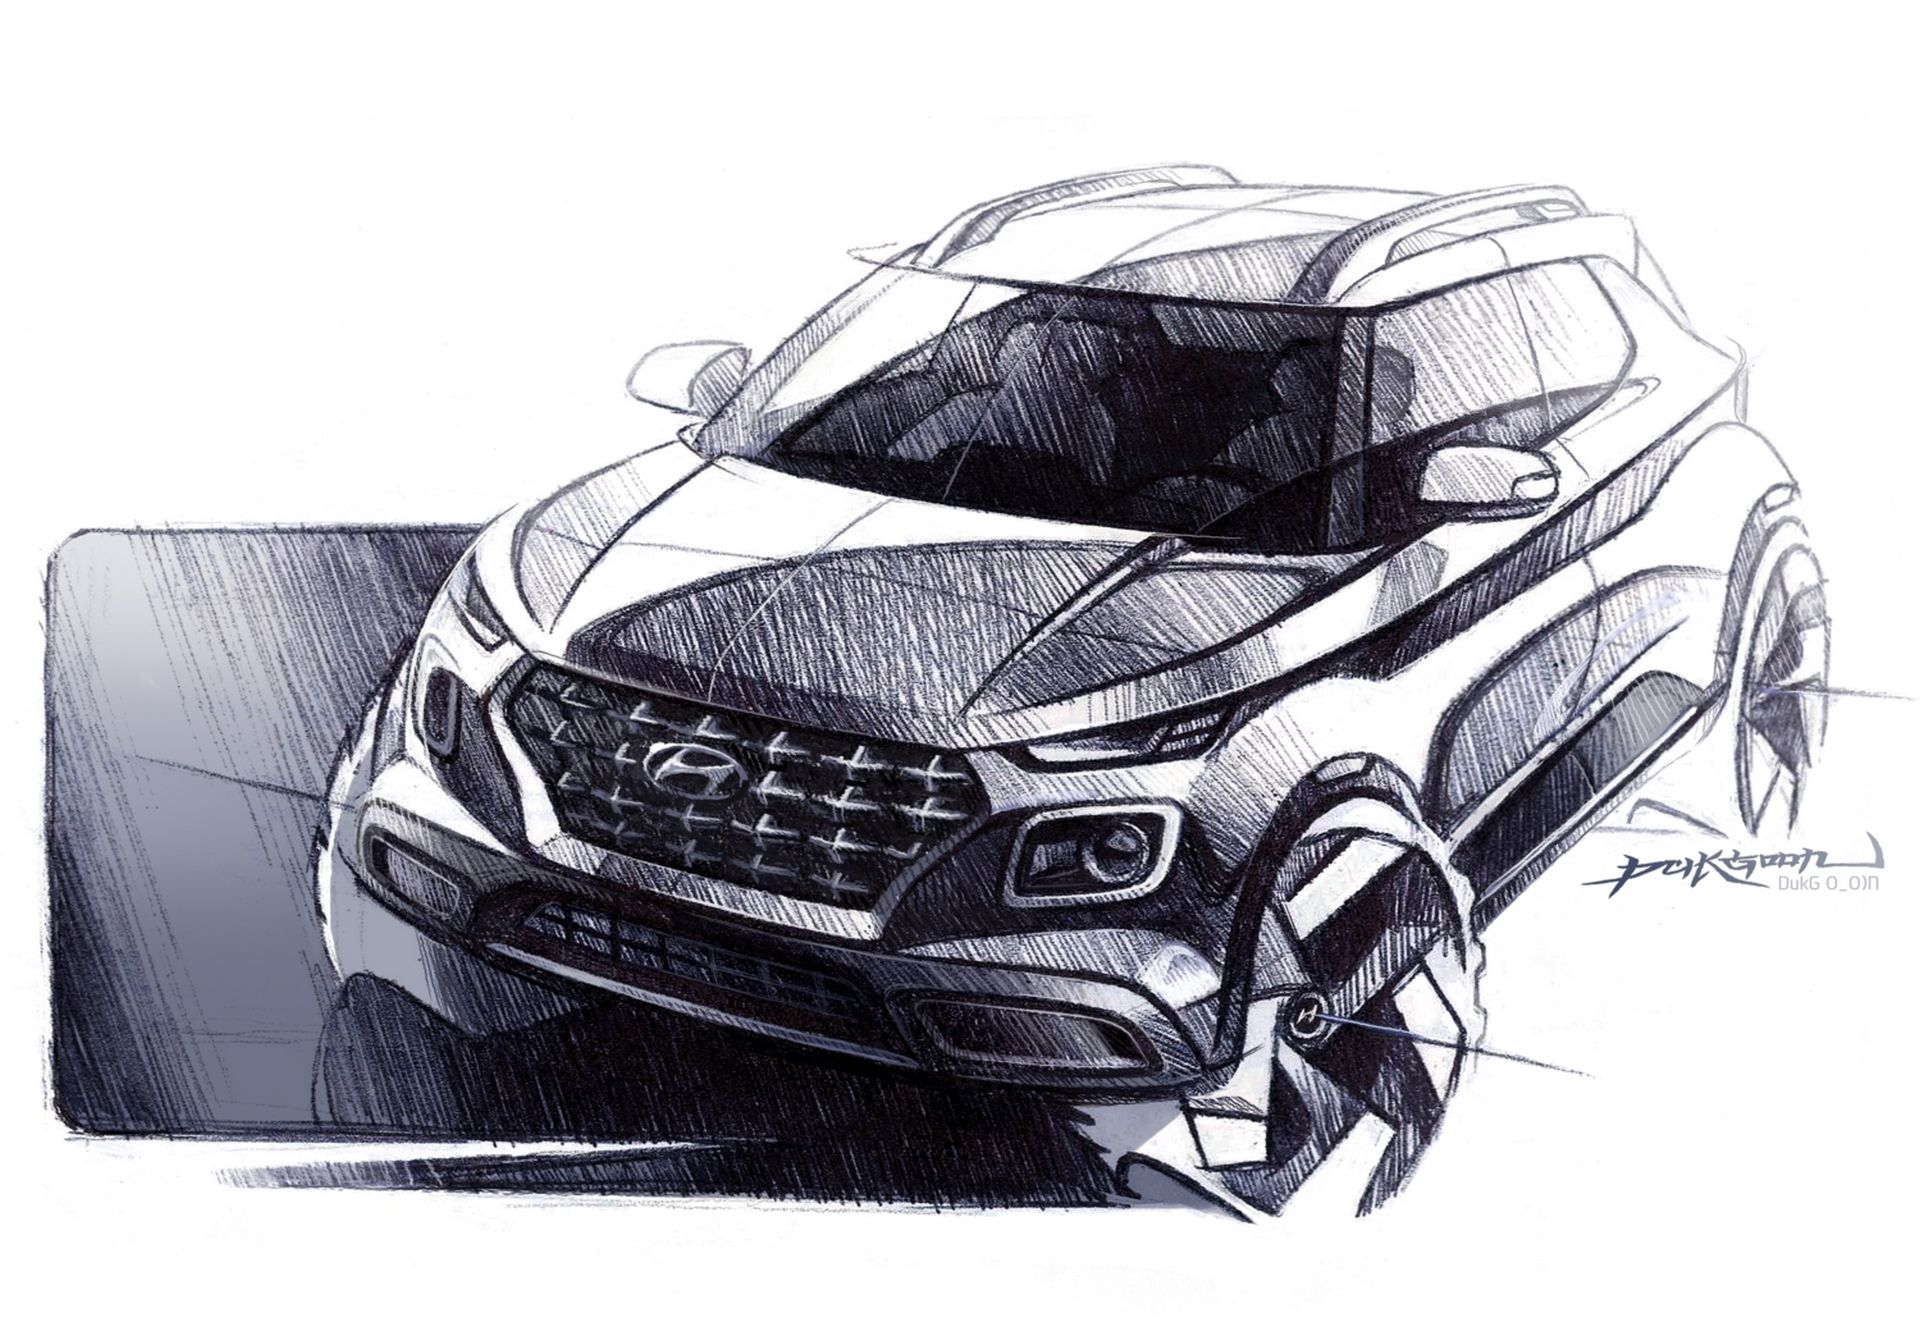 2020-hyundai-venue-looks-predictable-in-official-design-sketches_1